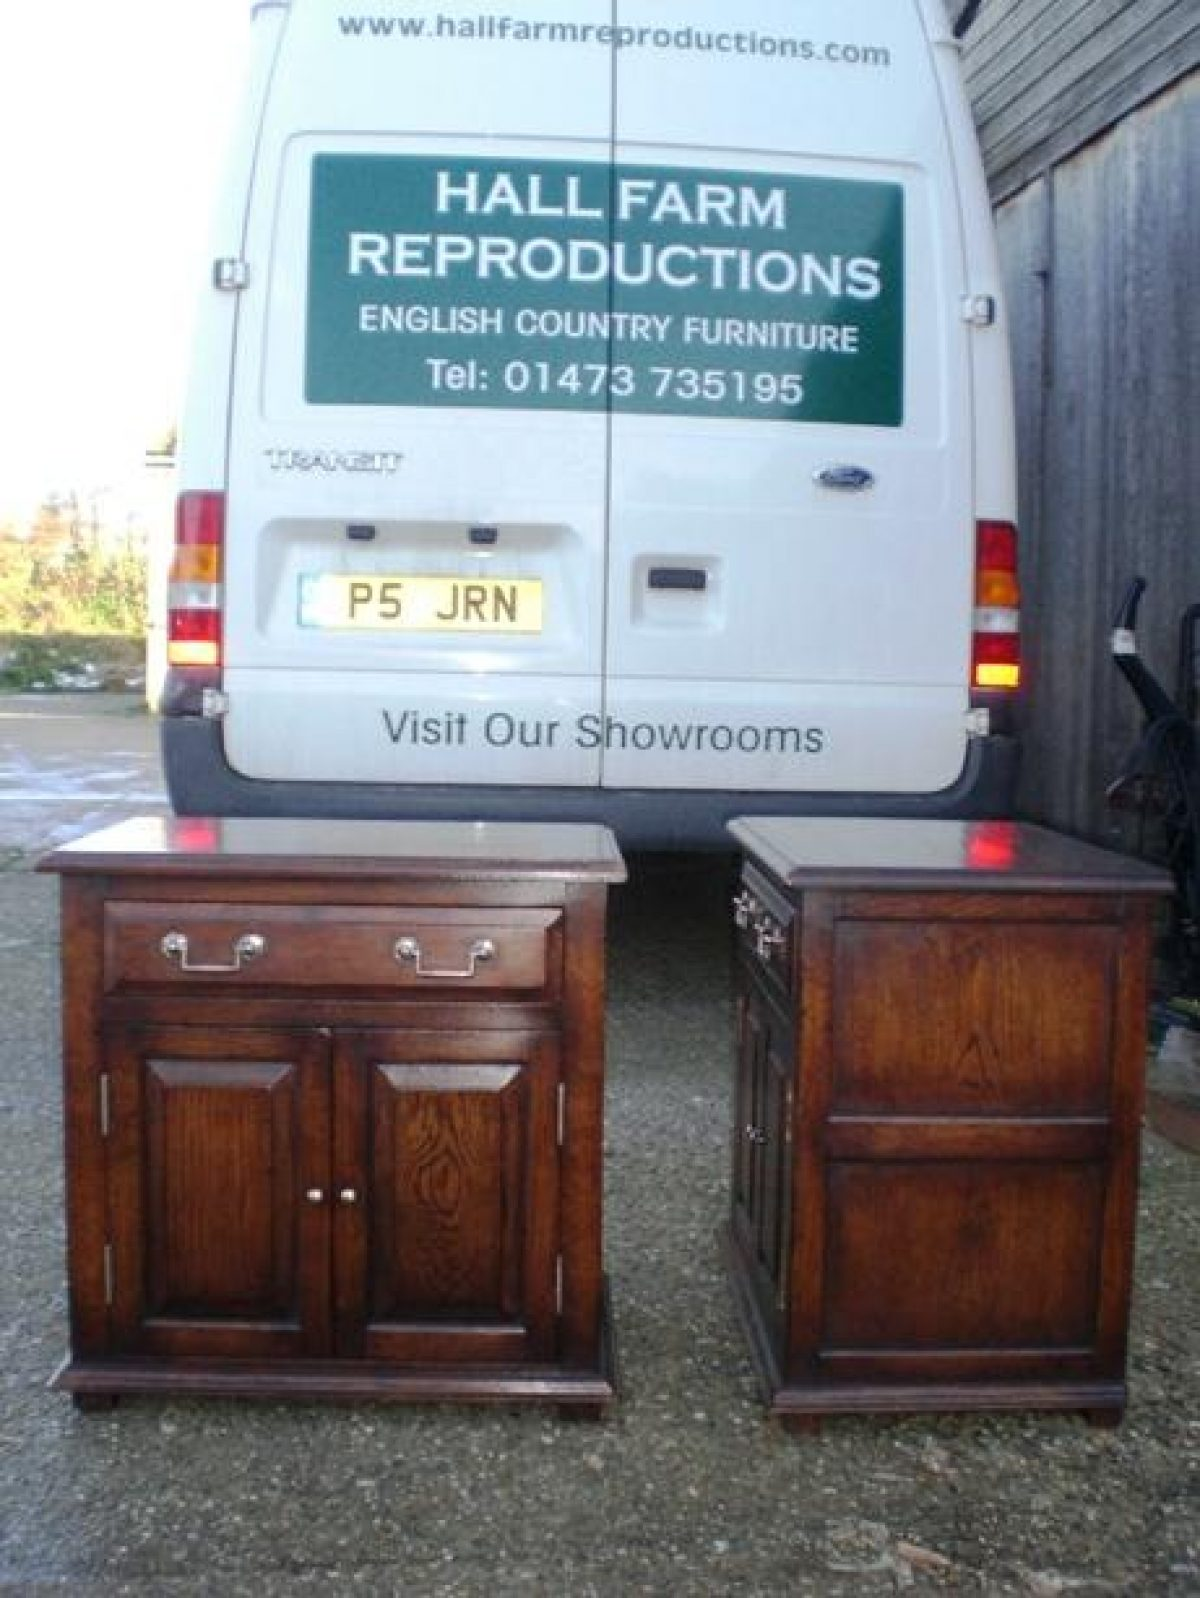 Bespoke Large Bedside Cabinets Handcrafted in Suffolk